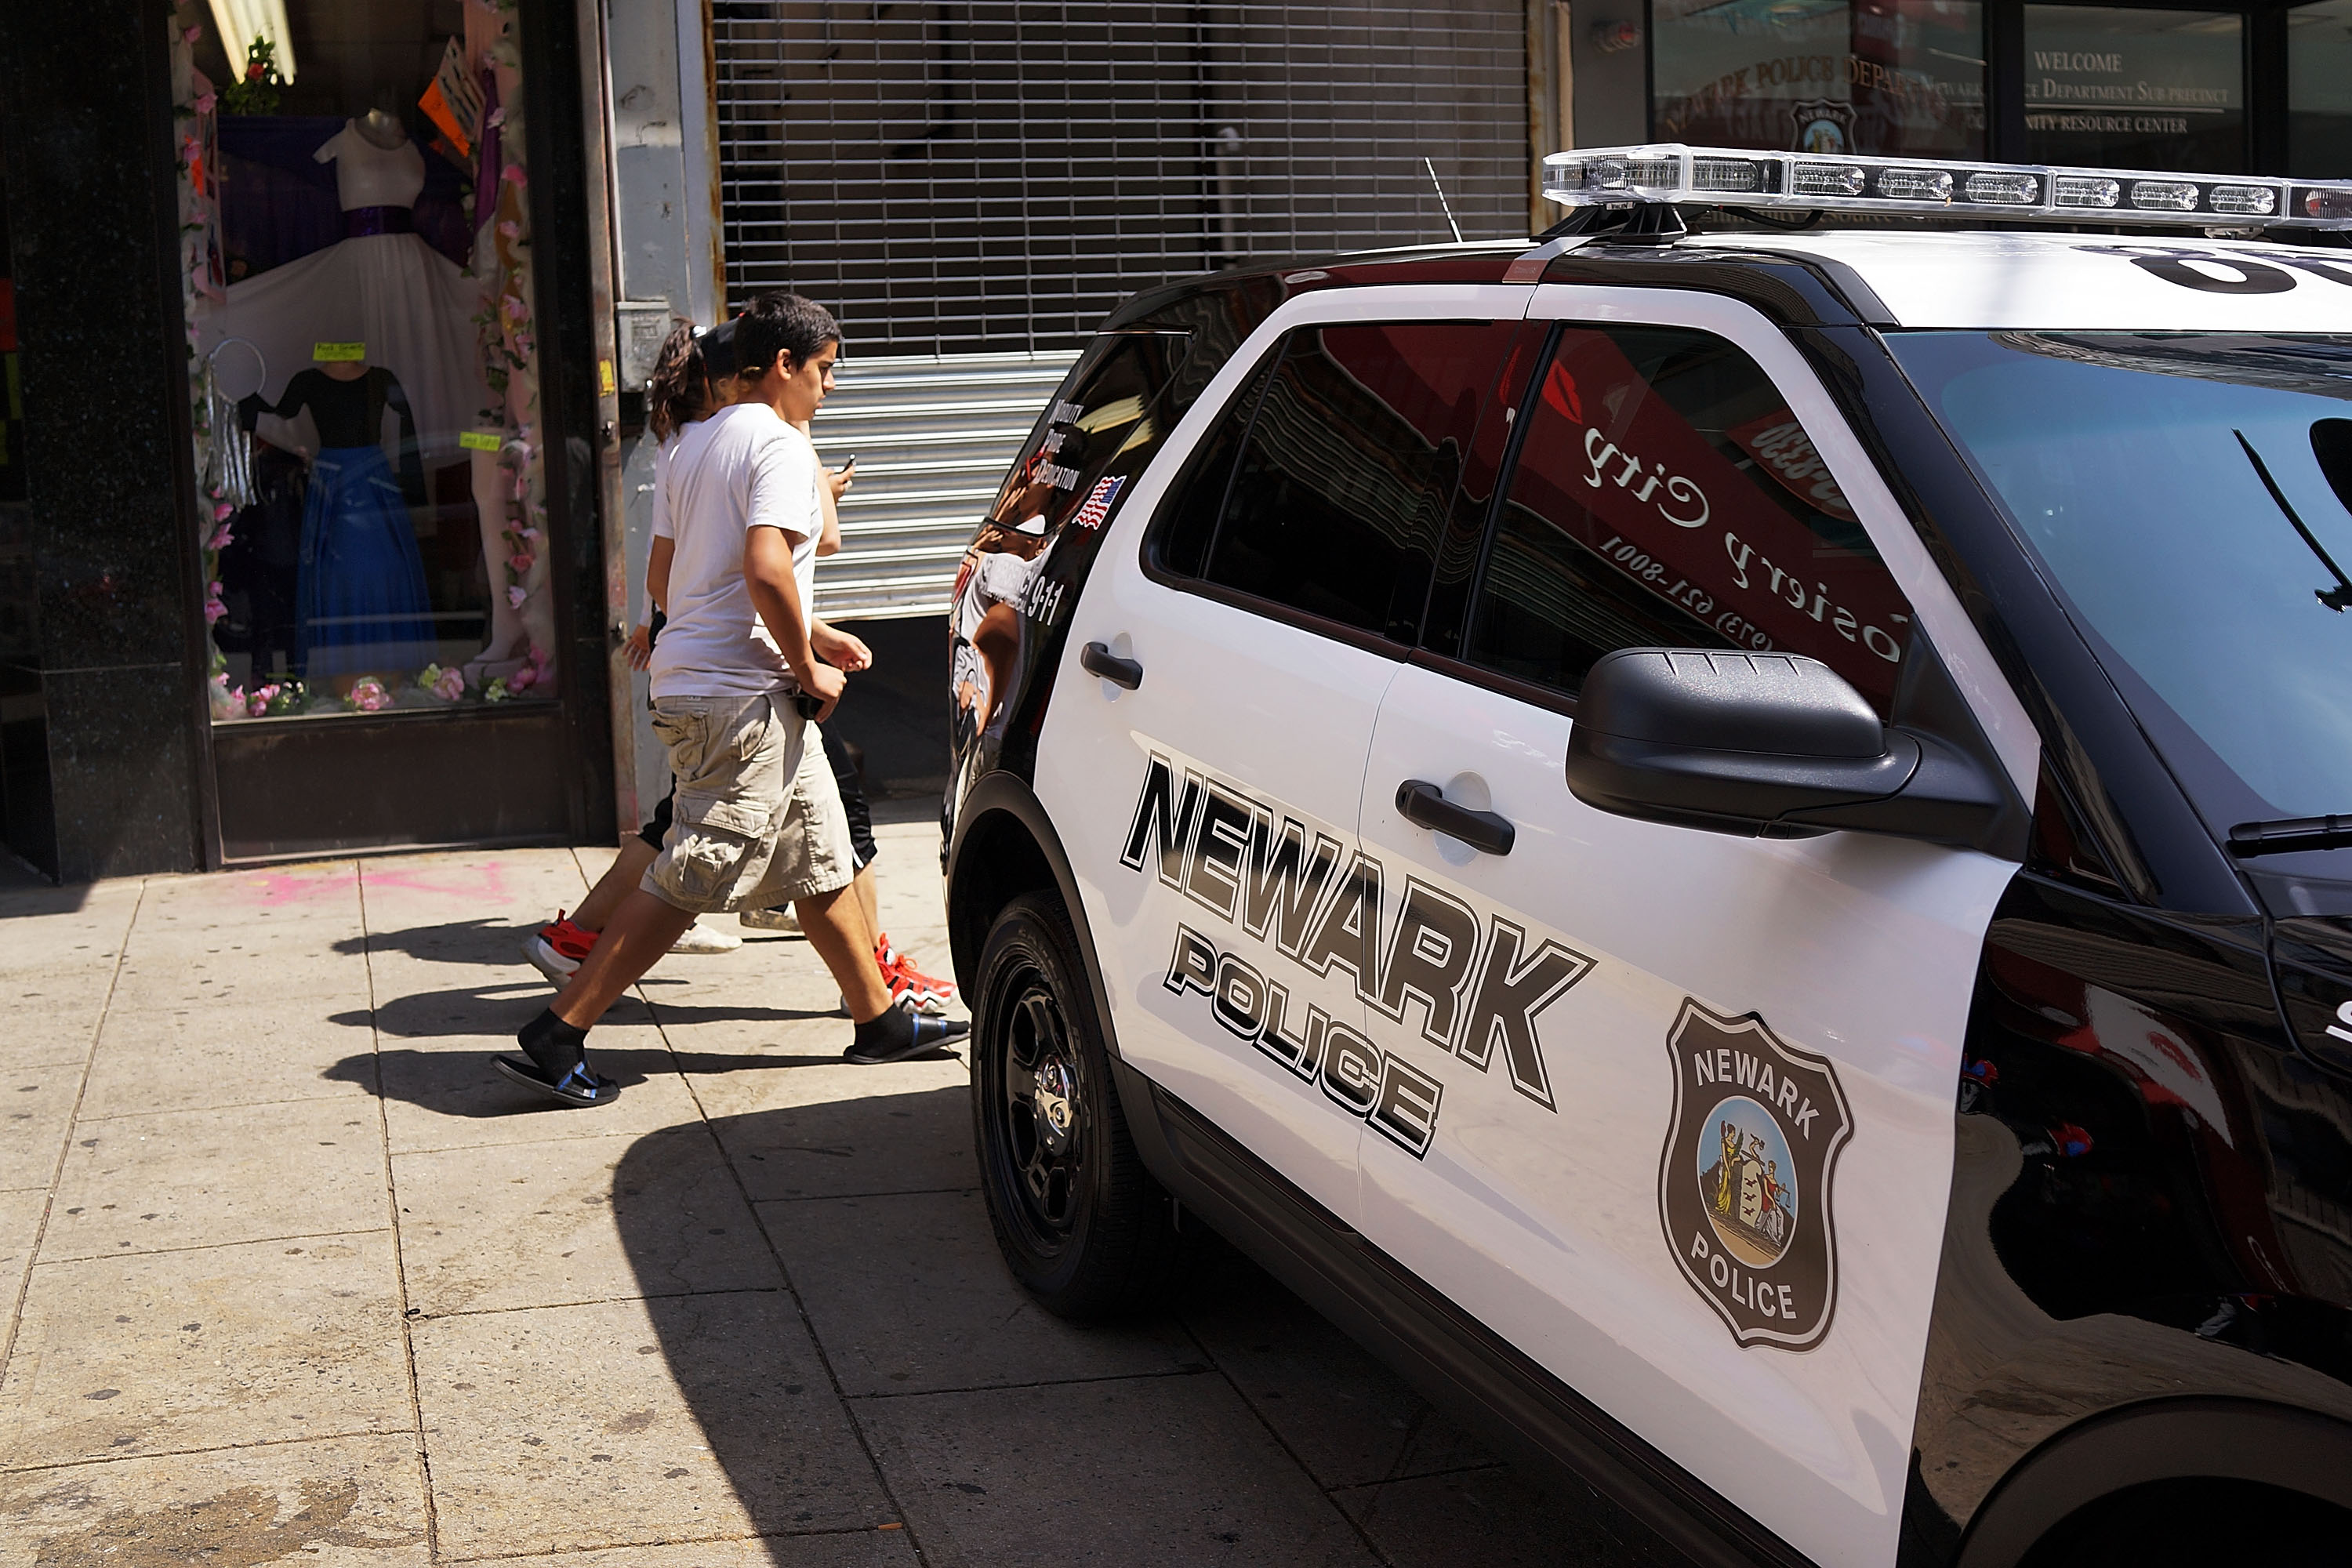 People walk by a police car in downtown on May 13, 2014 in Newark, New Jersey.